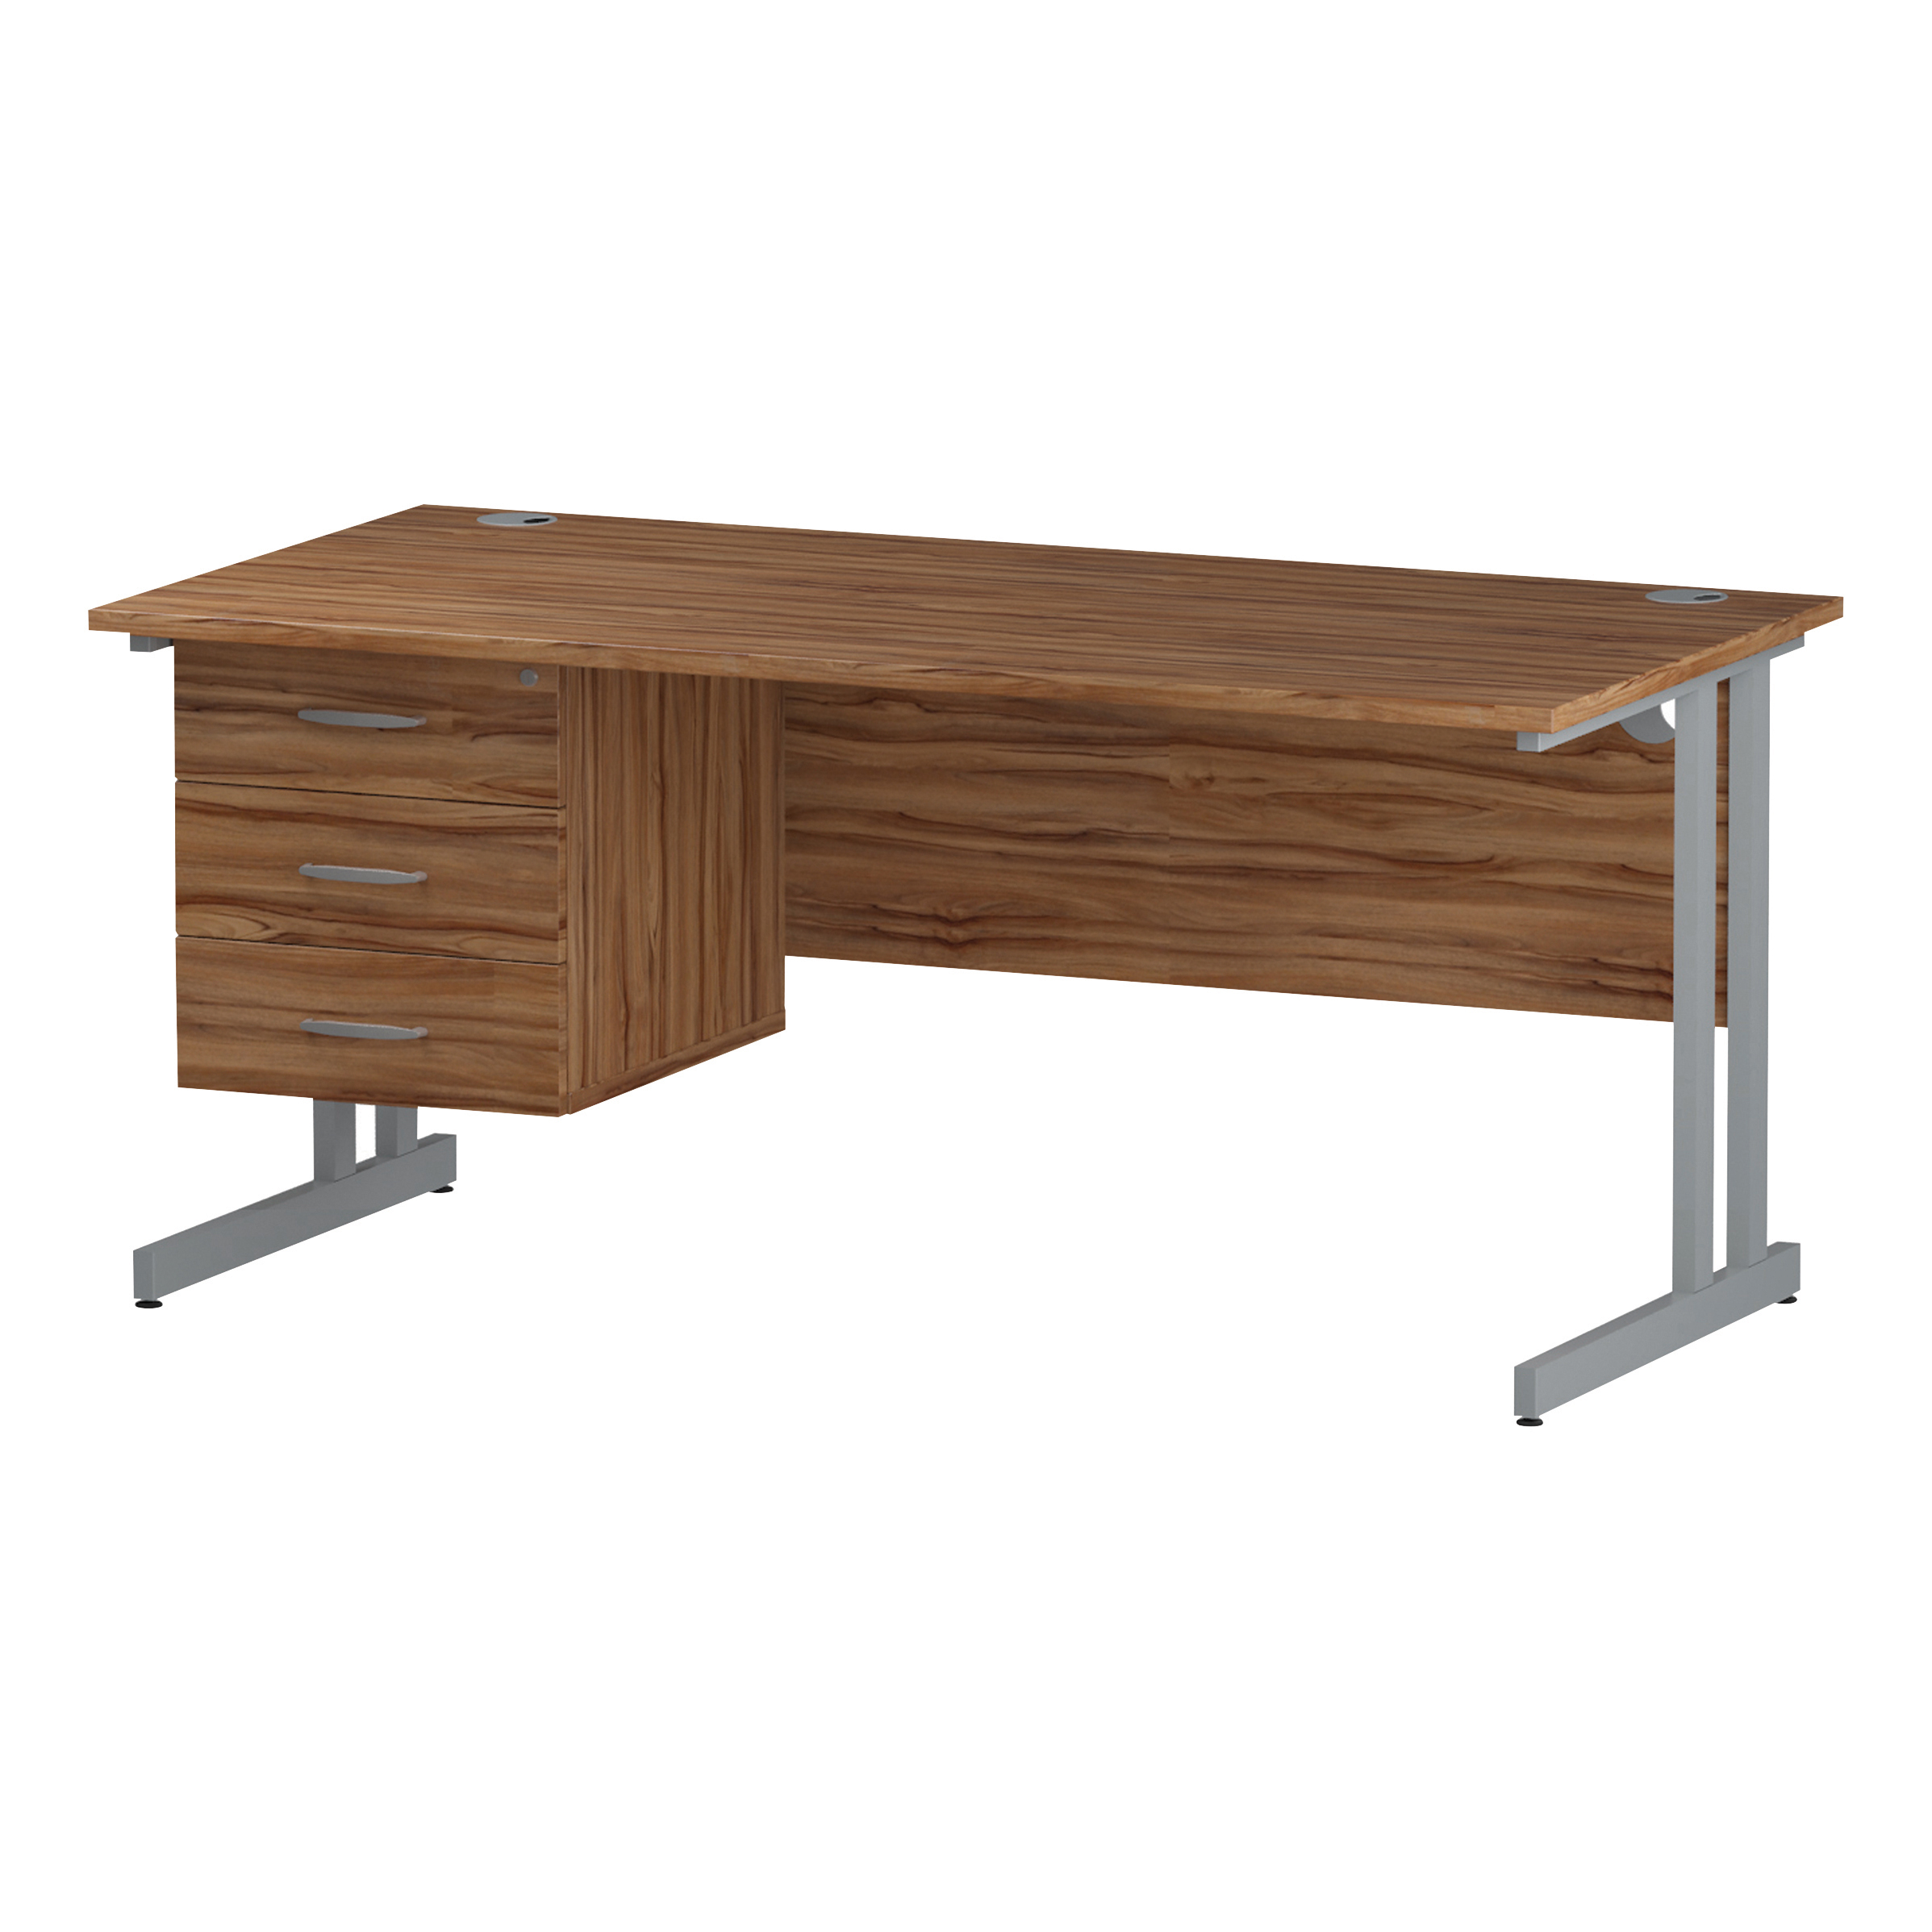 Trexus Rectangular Desk Silver Cantilever Leg 1600x800mm Fixed Pedestal 3 Drawers Walnut Ref I001929